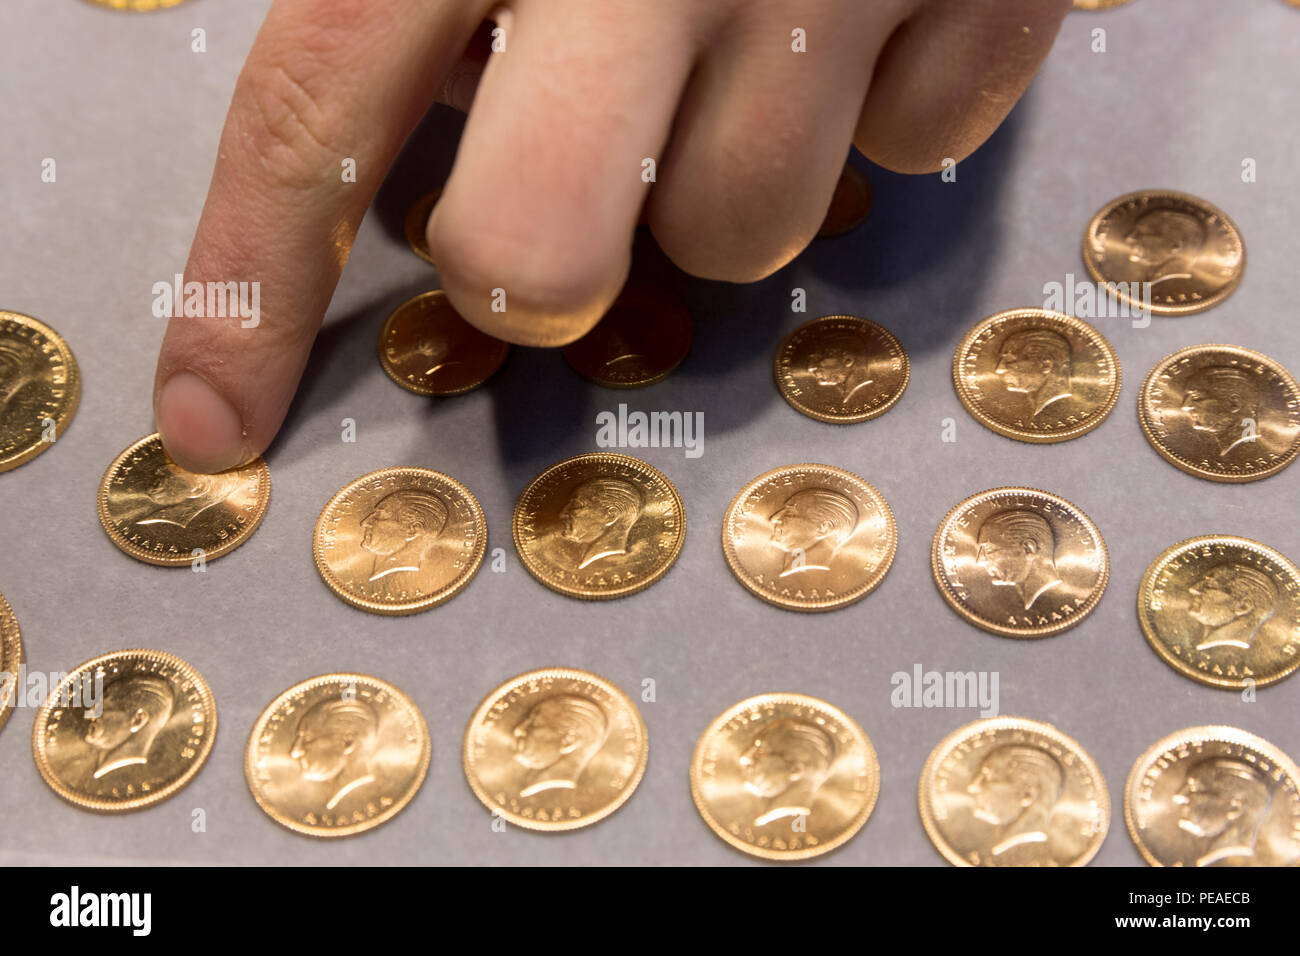 Gold Turkish lira coins Turk Lirasi 22 carat Ataturk image in The Grand Bazaar, Kapalicarsi, great market, Istanbul, Turkey Stock Photo